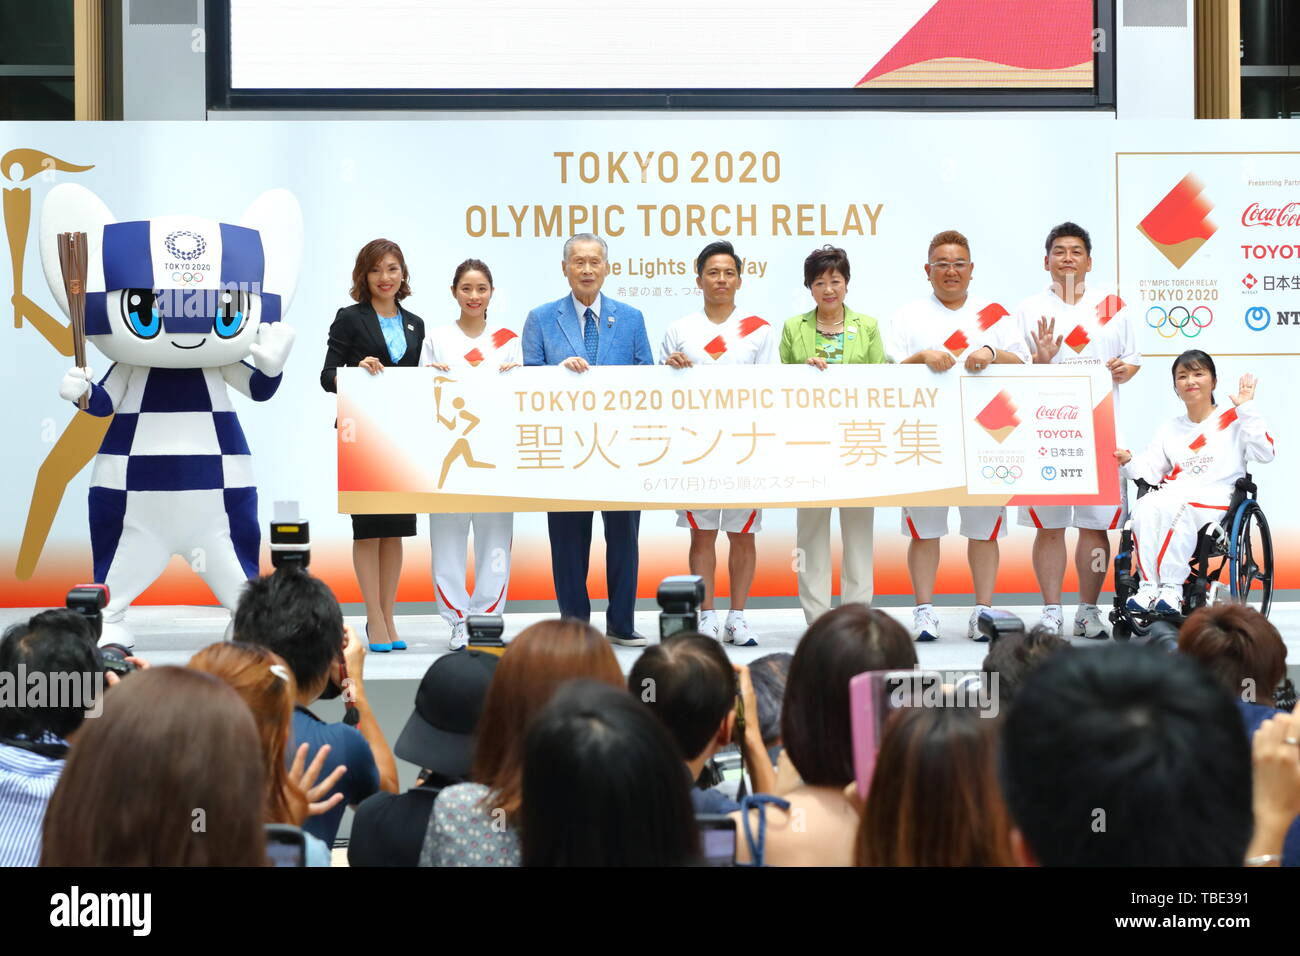 Tokyo, Japan. 1st June, 2019. (L-R) Miraitowa, Miho Takeda, Satomi Ishihara, Yoshiro Mori, Tadahiro Nomura, Yuriko Koike, Mikio Date, Takeshi Tomizawa, Aki Taguchi, The Tokyo Organising Committee of the Olympic and Paralympic Games (Tokyo 2020) holds commemorative event of Torch Relay in Tokyo, Japan on June 1, 2019, 300 days before of the Japanese leg of the Tokyo 2020 Olympic Torch Relay starts. The Organising Committee unveiled an official uniform, course outline and applicant guidelines for Torch Relay Runners. Credit: Naoki Nishimura/AFLO SPORT/Alamy Live News - Stock Image